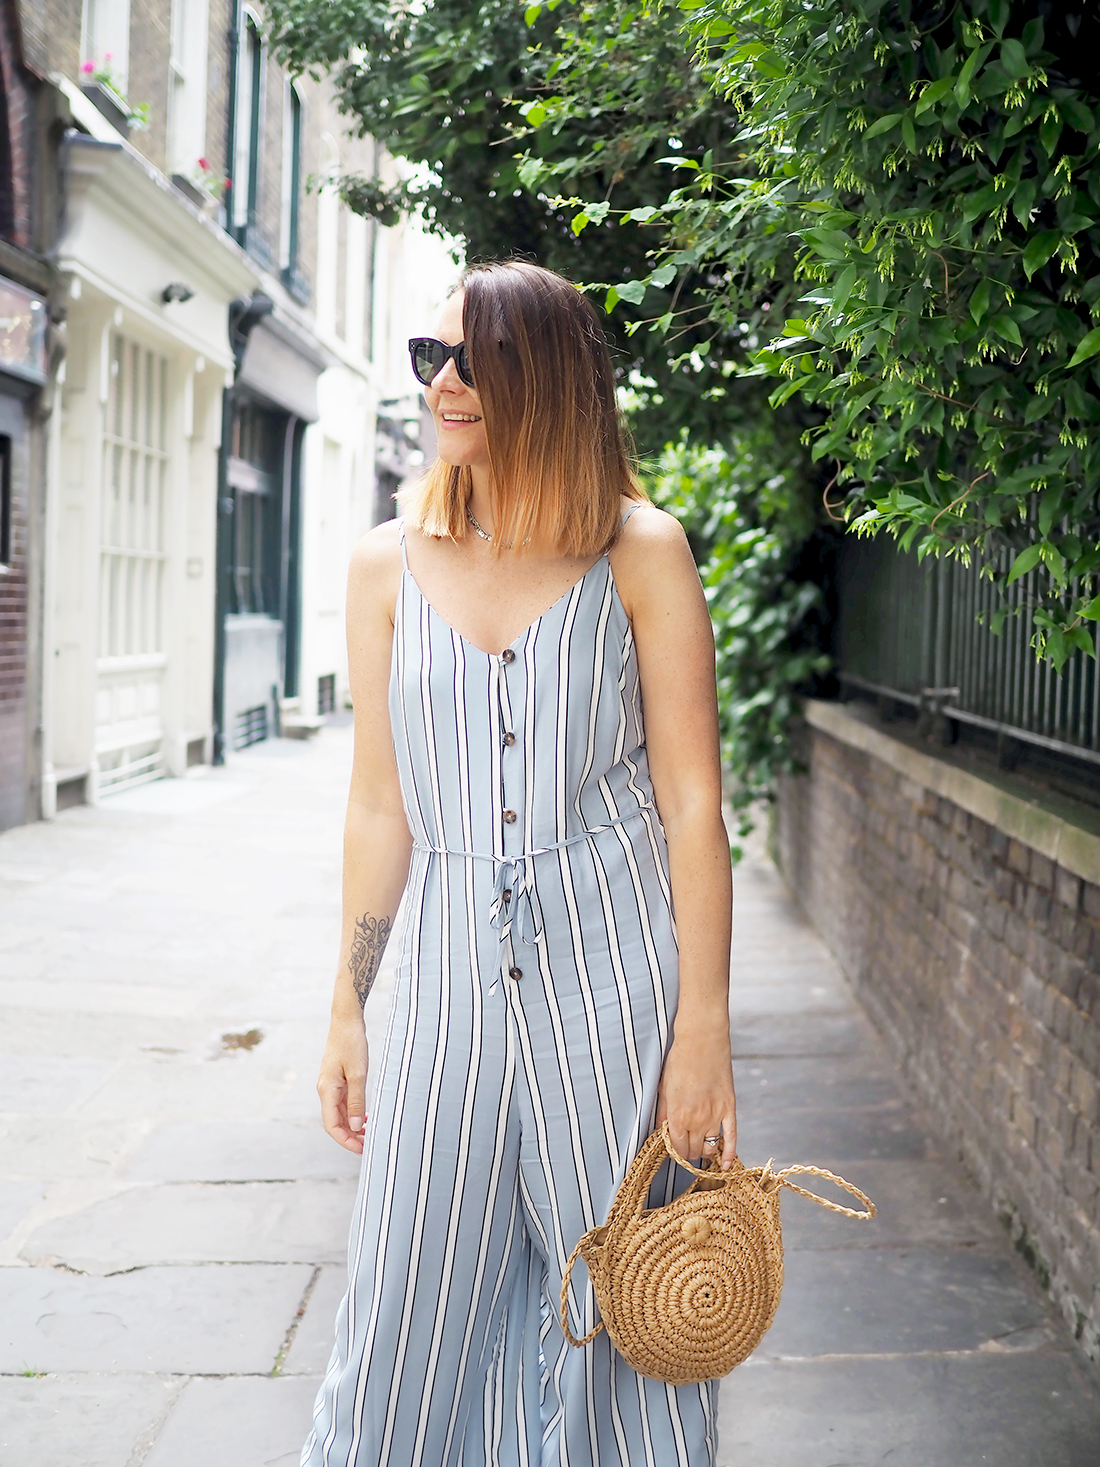 primark jumpsuit outfit with denim jacket and white trainers